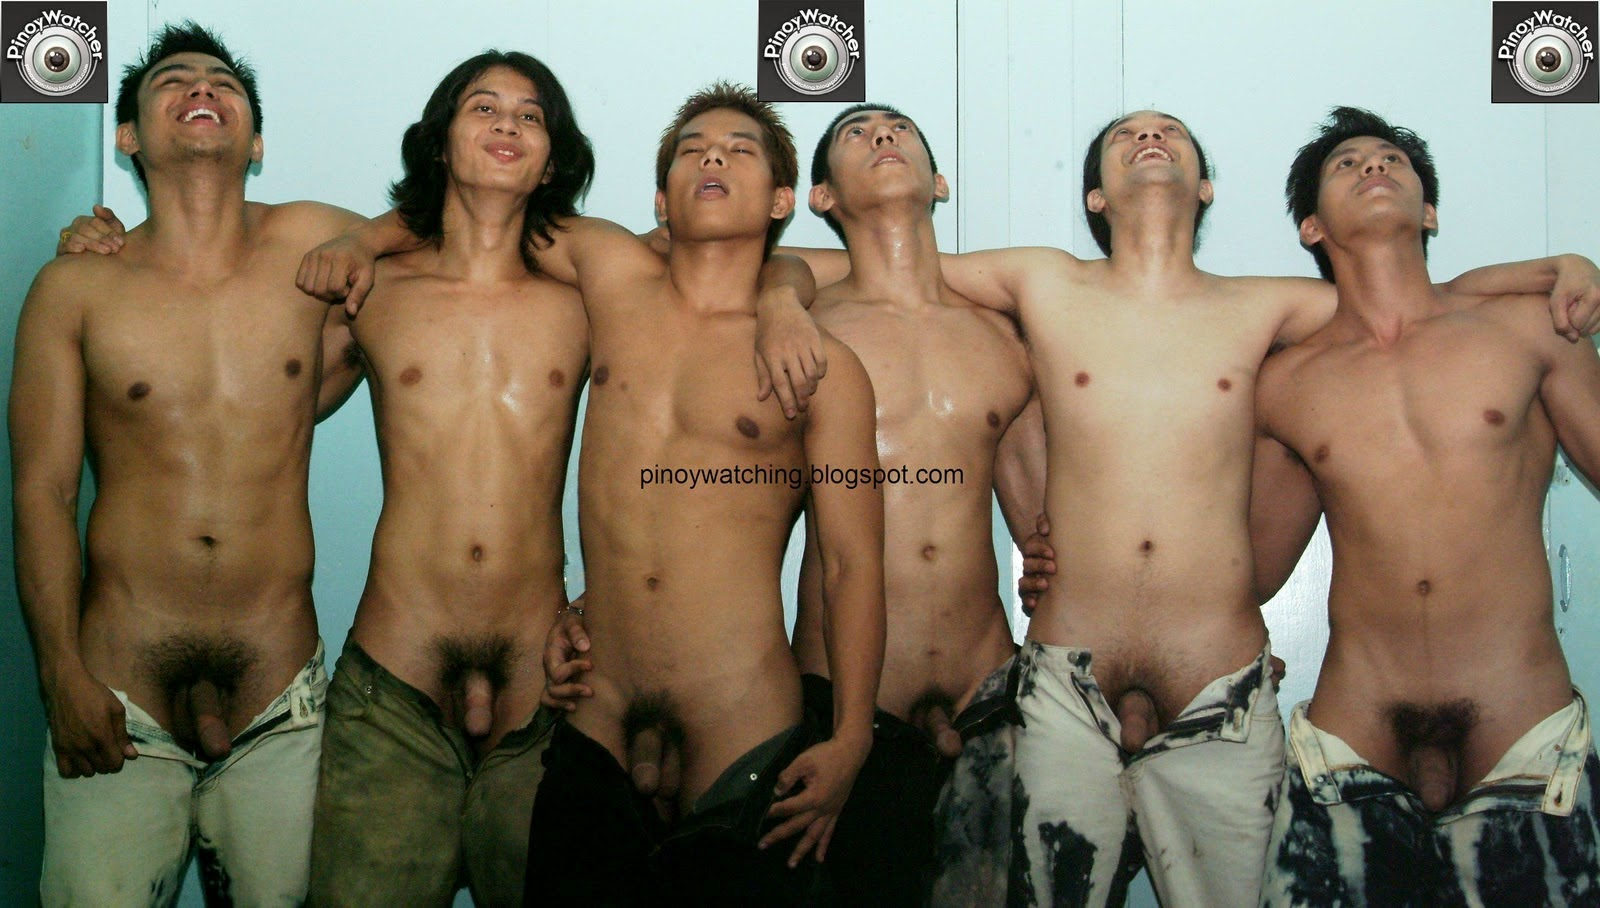 Commit Full frontal filipino male nude think